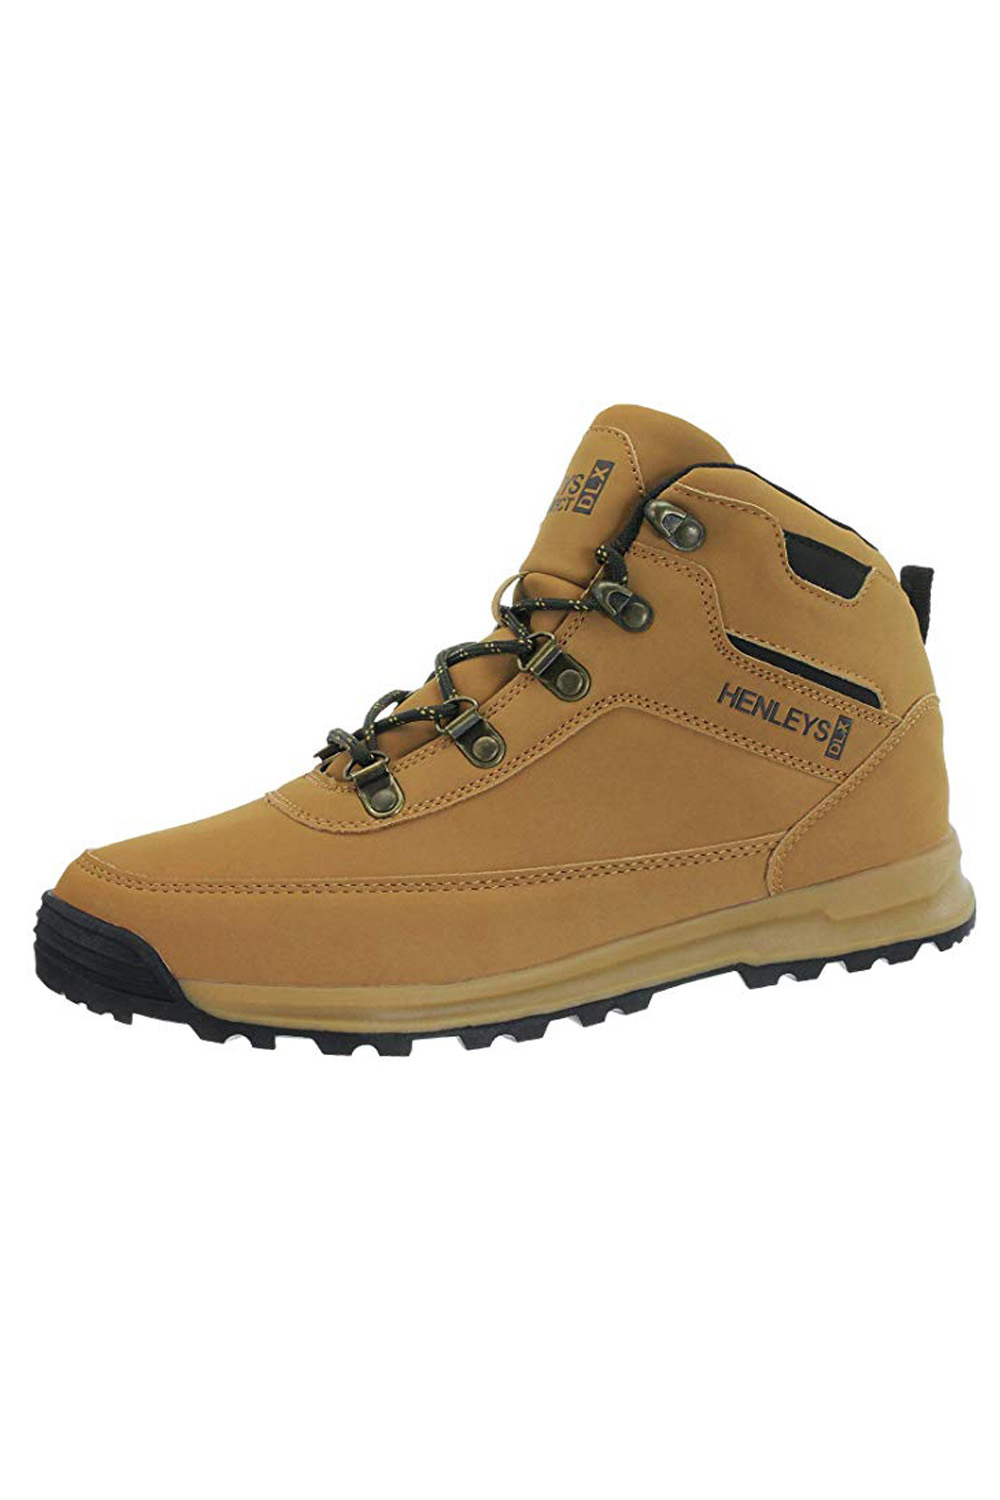 Henleys-Mens-Travis-Hiking-Boots-Walking-Lace-Up-Outdoor-Shoes-Sizes-UK-6-12 thumbnail 4